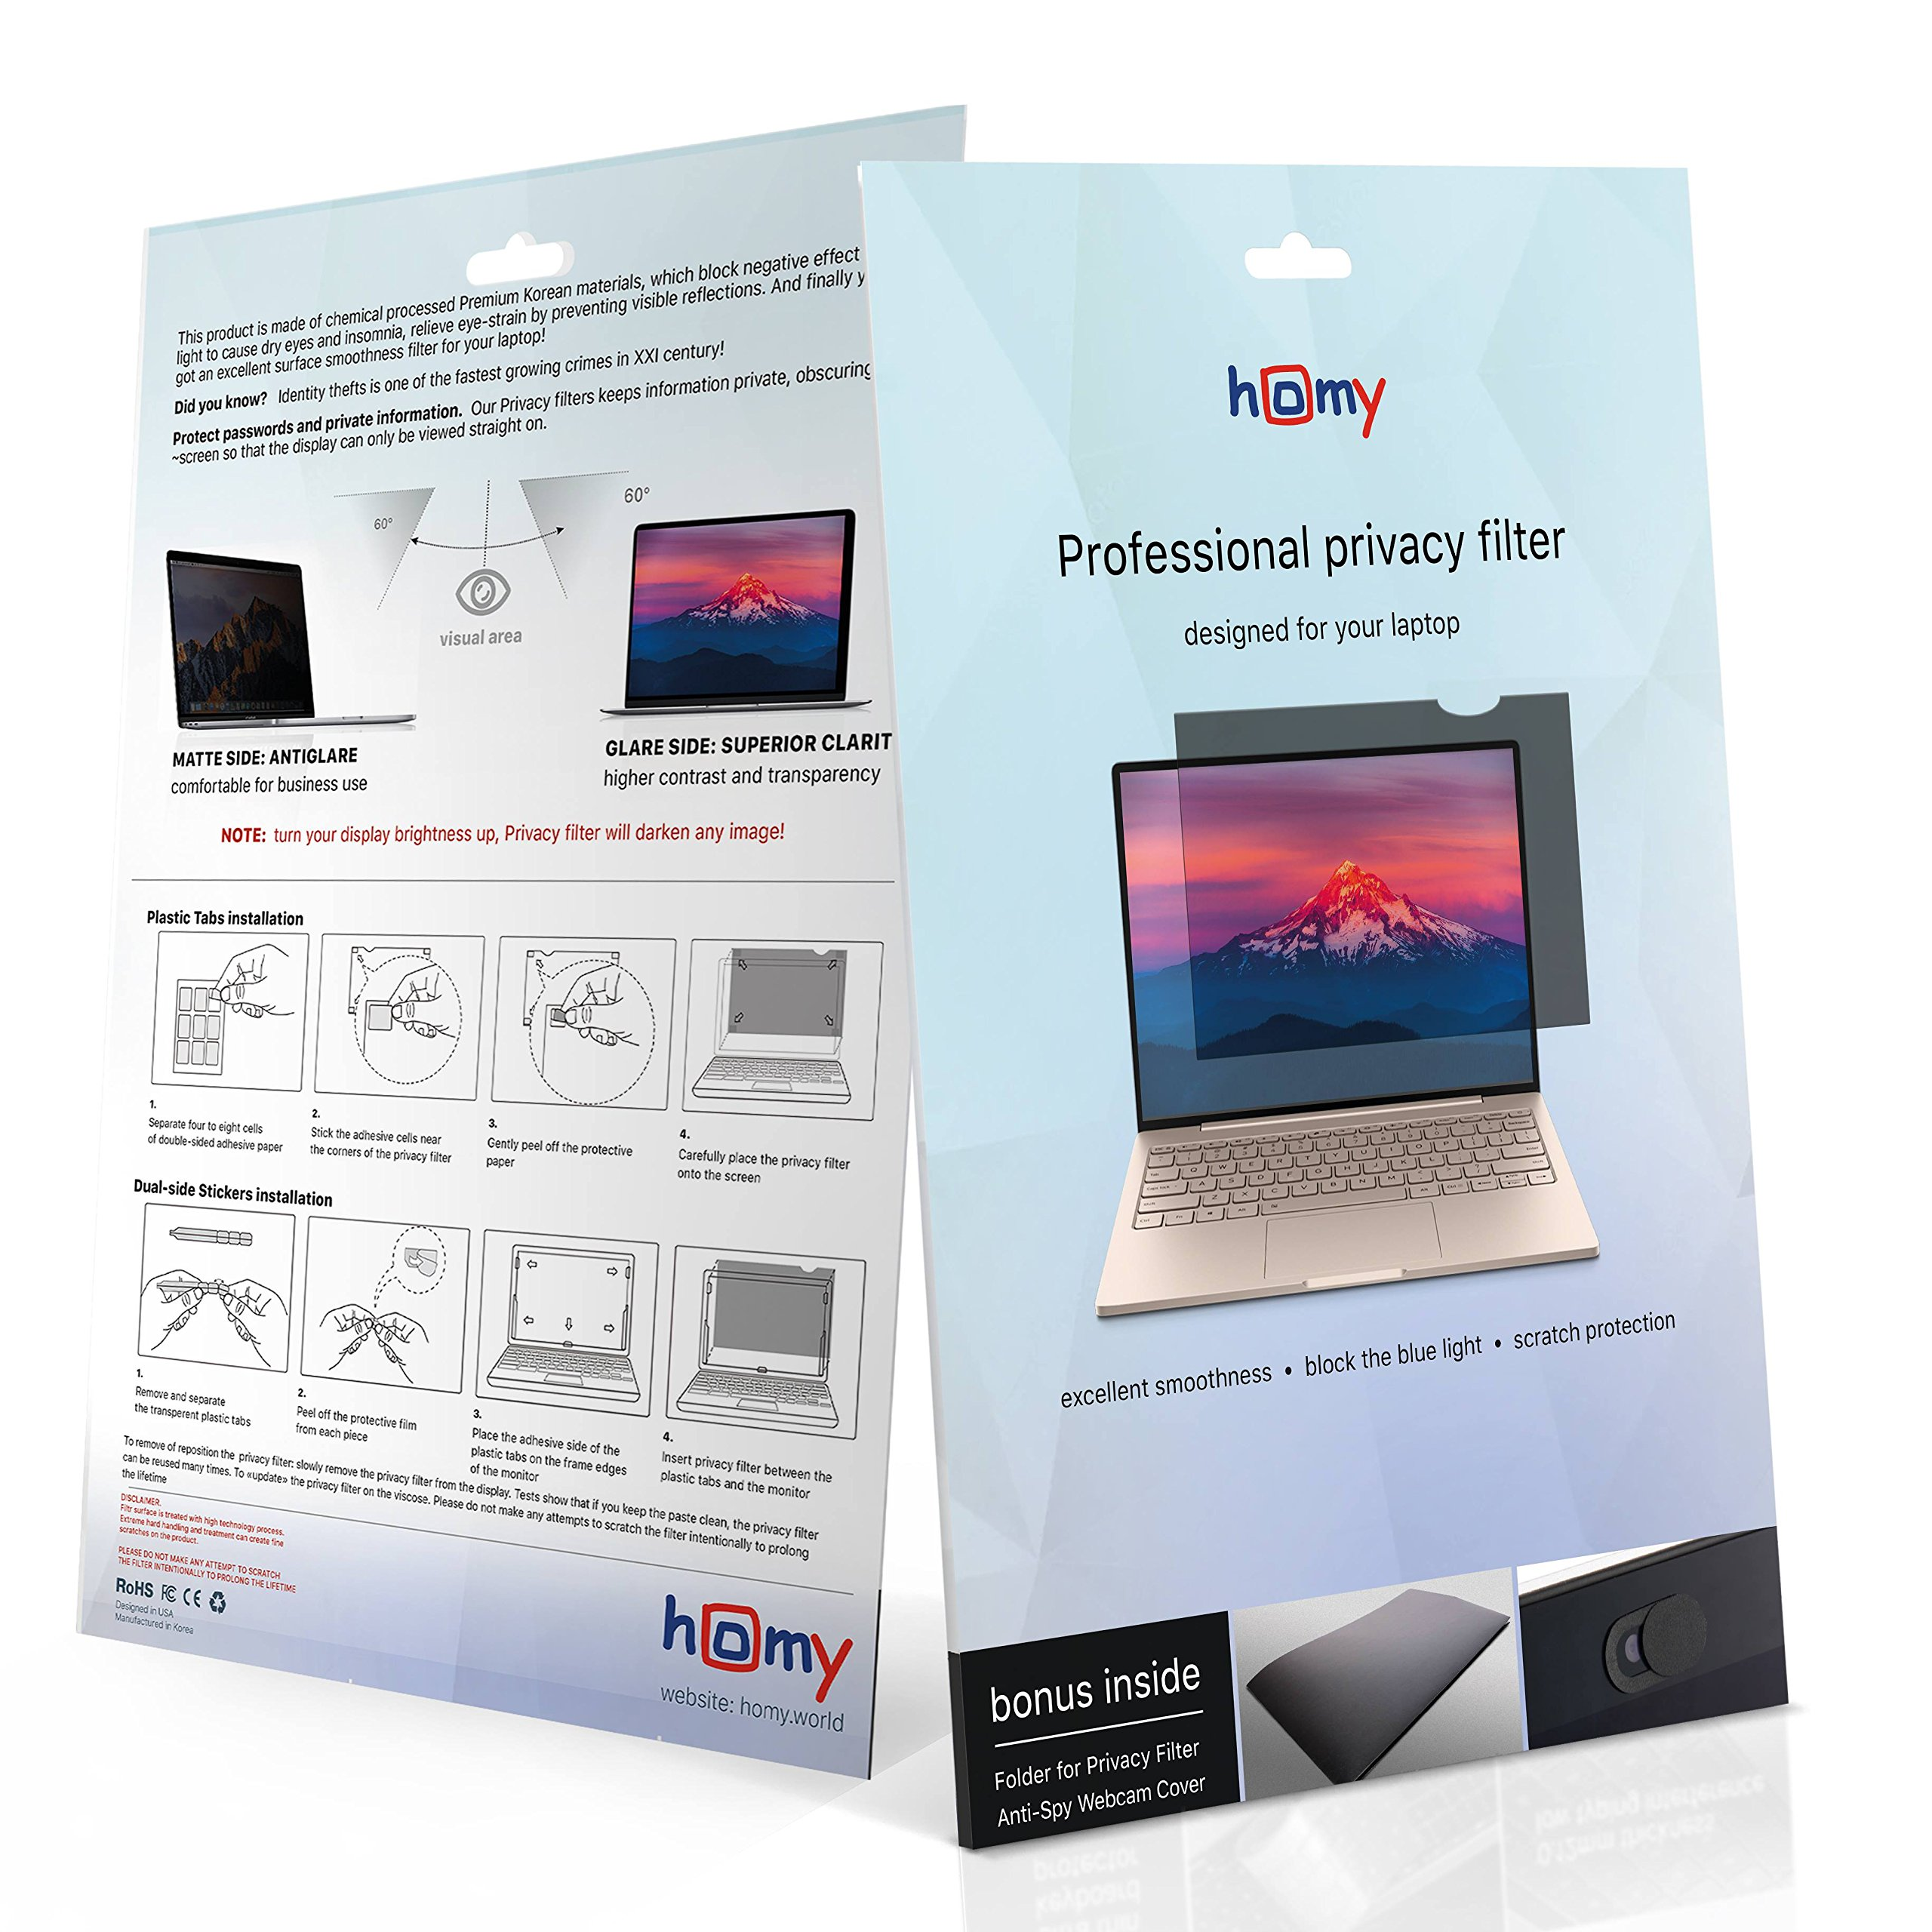 Homy Laptop Privacy Filter Compatible with 14.0 Inch Widescreen (12.2 x 6.9 in) - Anti-spy Screen Protector for Widescreen Laptops Matte Surface Storage Folder & Anti Spy Web Camera Cover. by Homy international (Image #7)